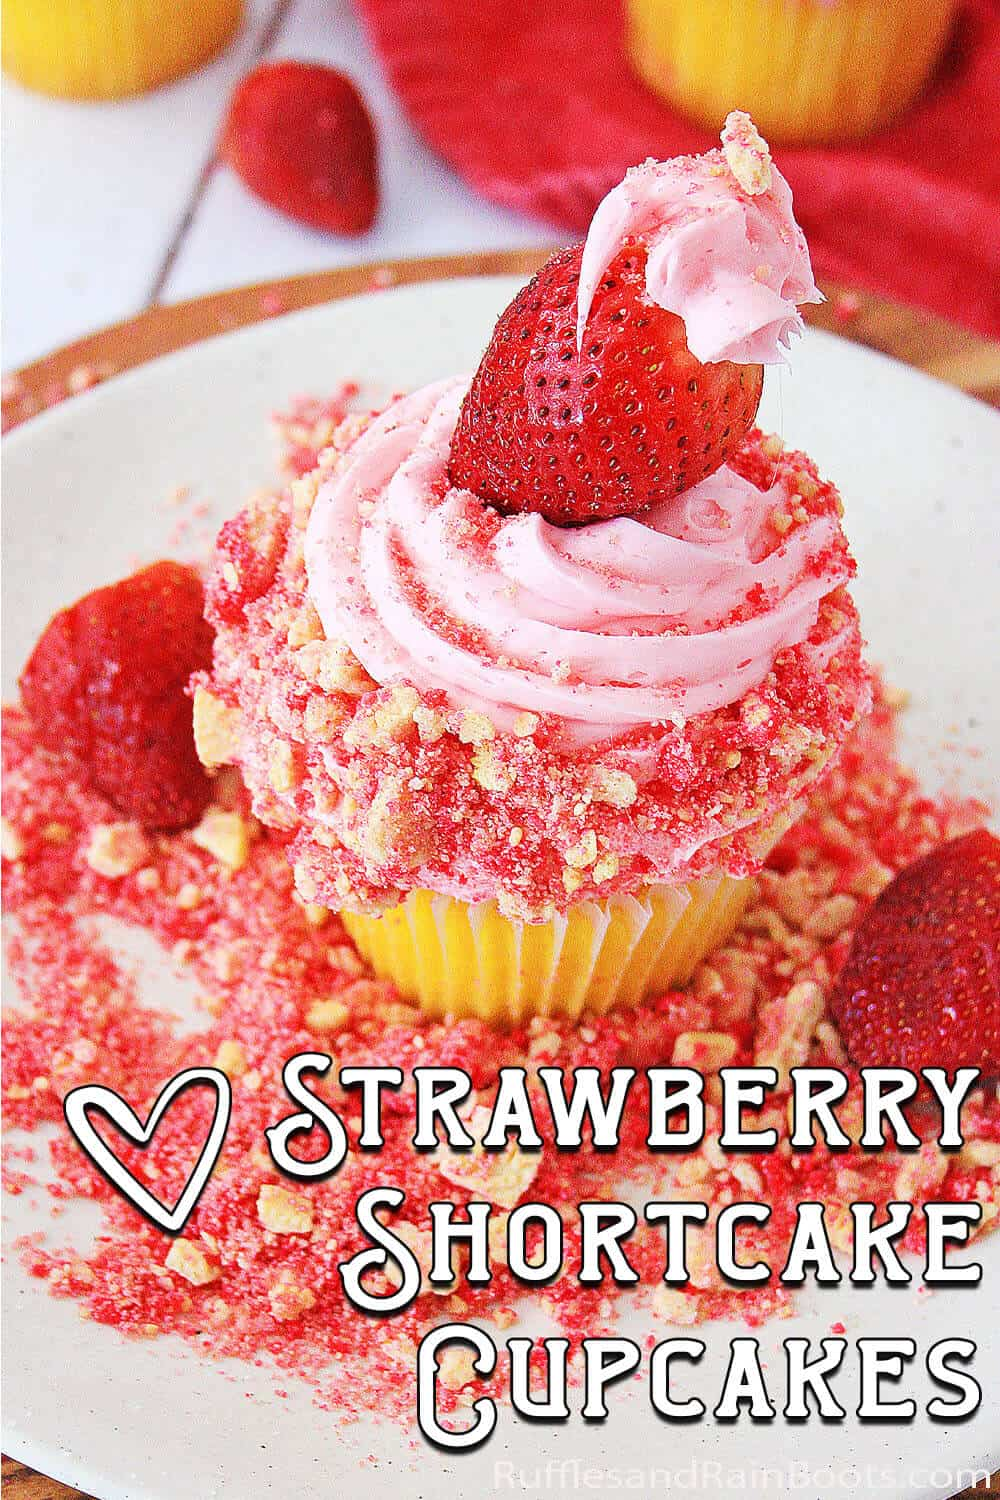 easy strawberries and cream cupcake decorating idea with text which reads strawberry shortcake cupcakes